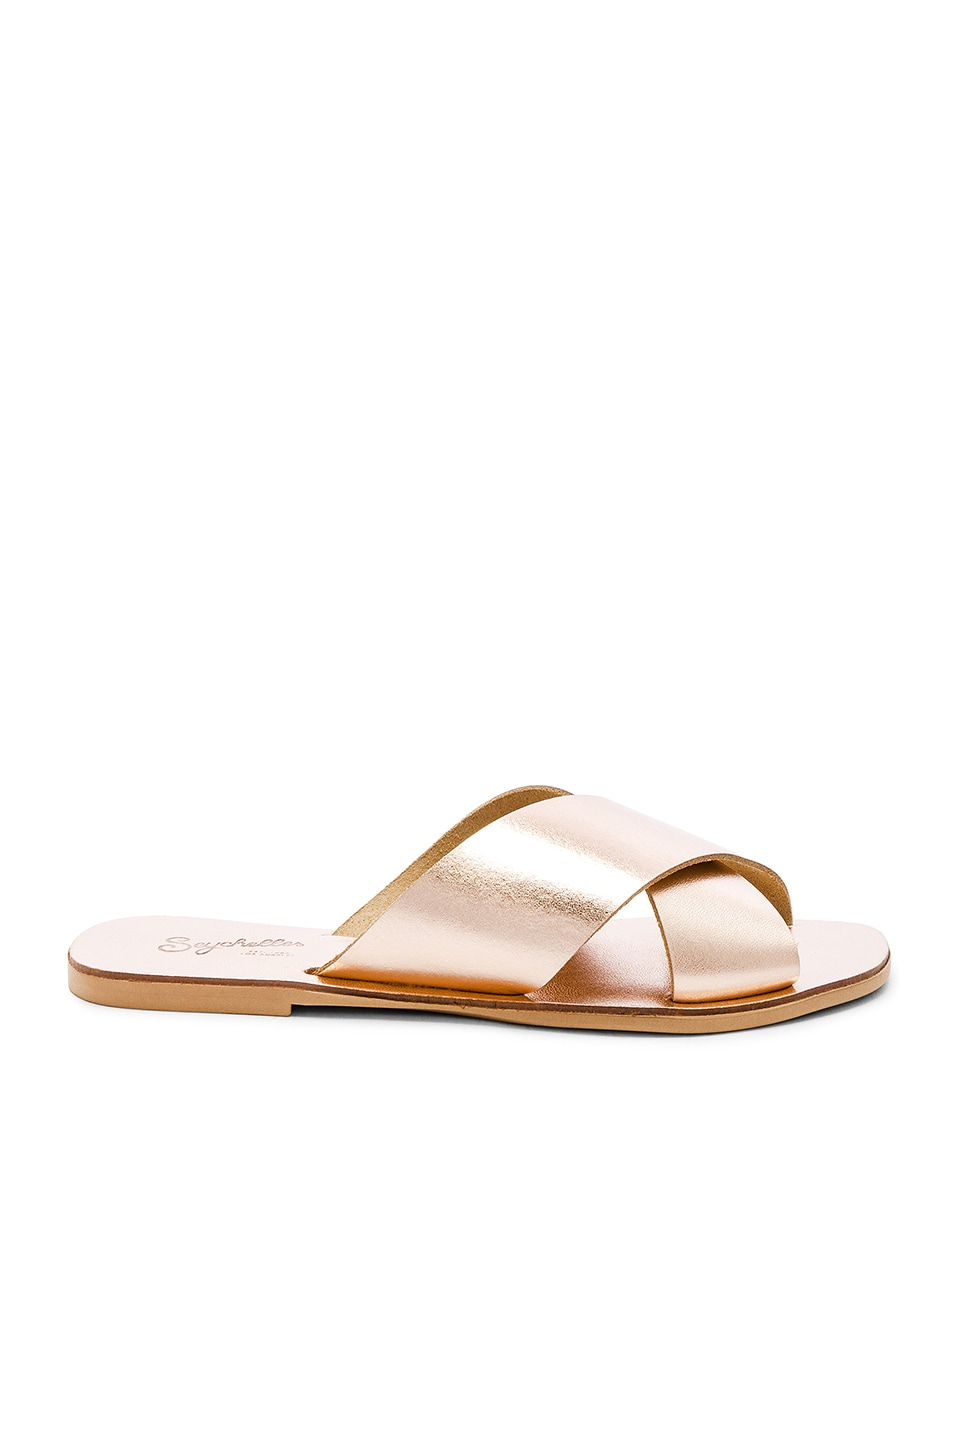 Seychelles Total Relaxation Sandal in Rose Gold